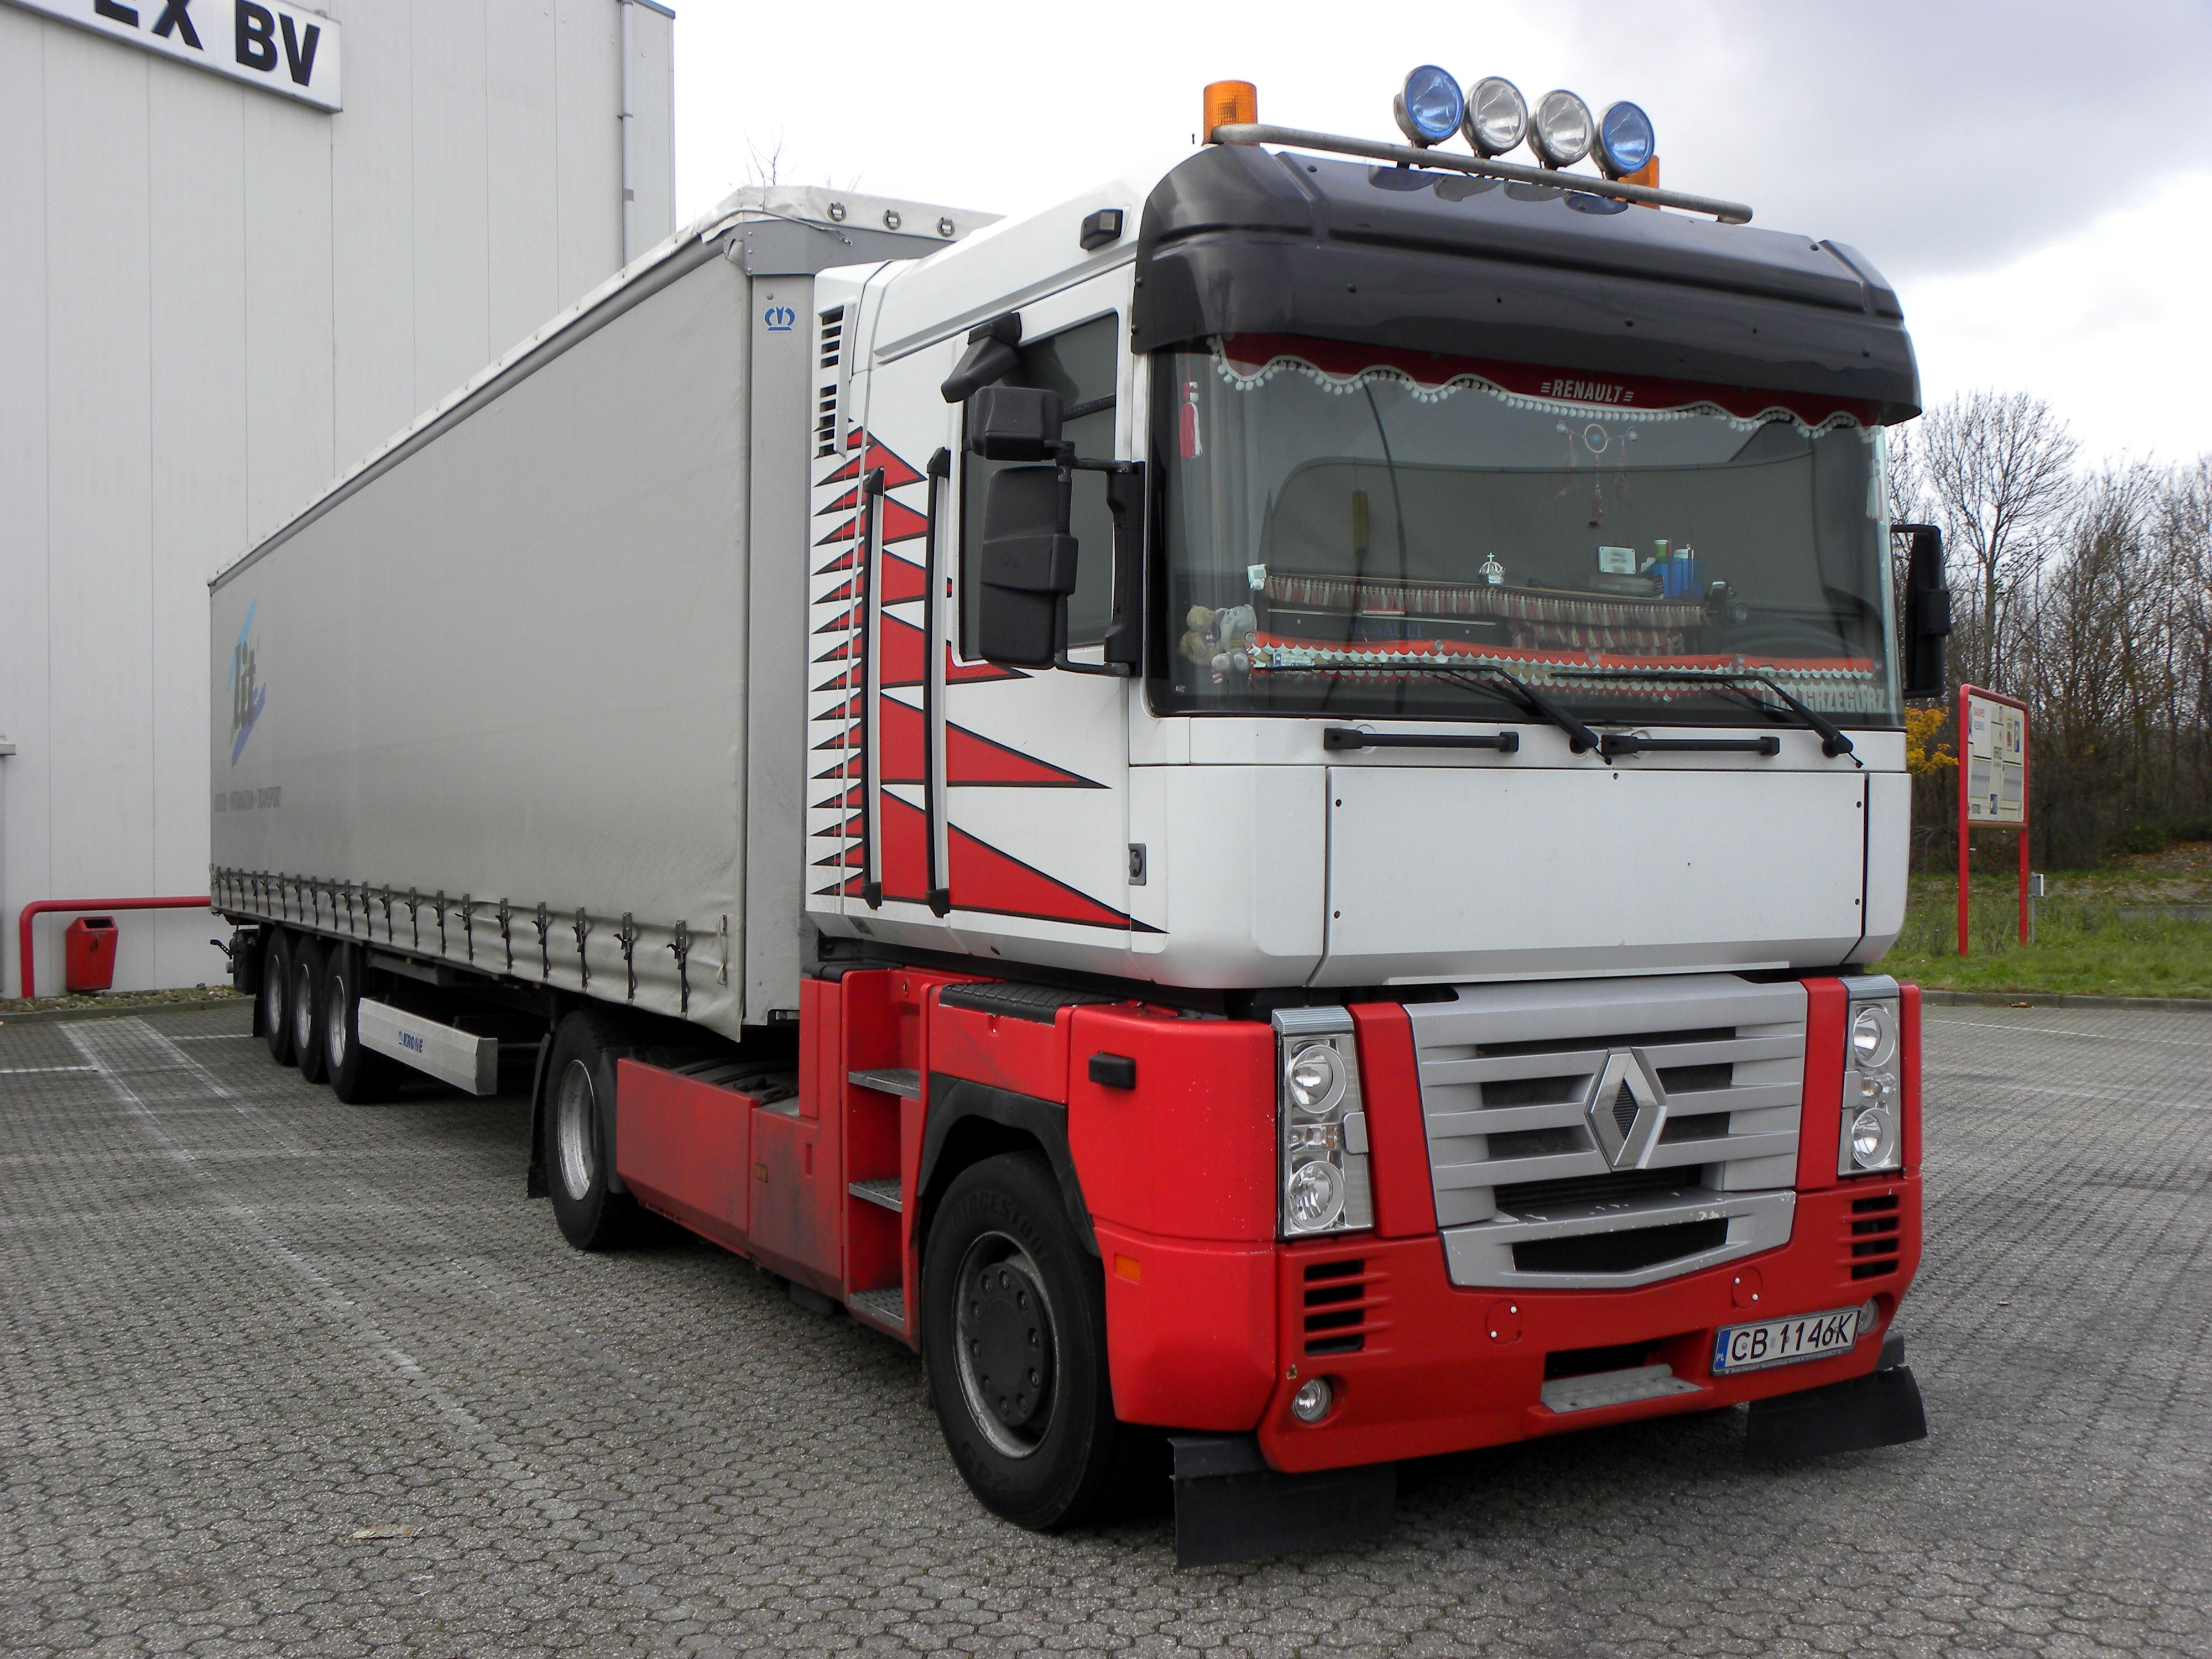 r t mycock sons aqcuire a new renault truck. Black Bedroom Furniture Sets. Home Design Ideas